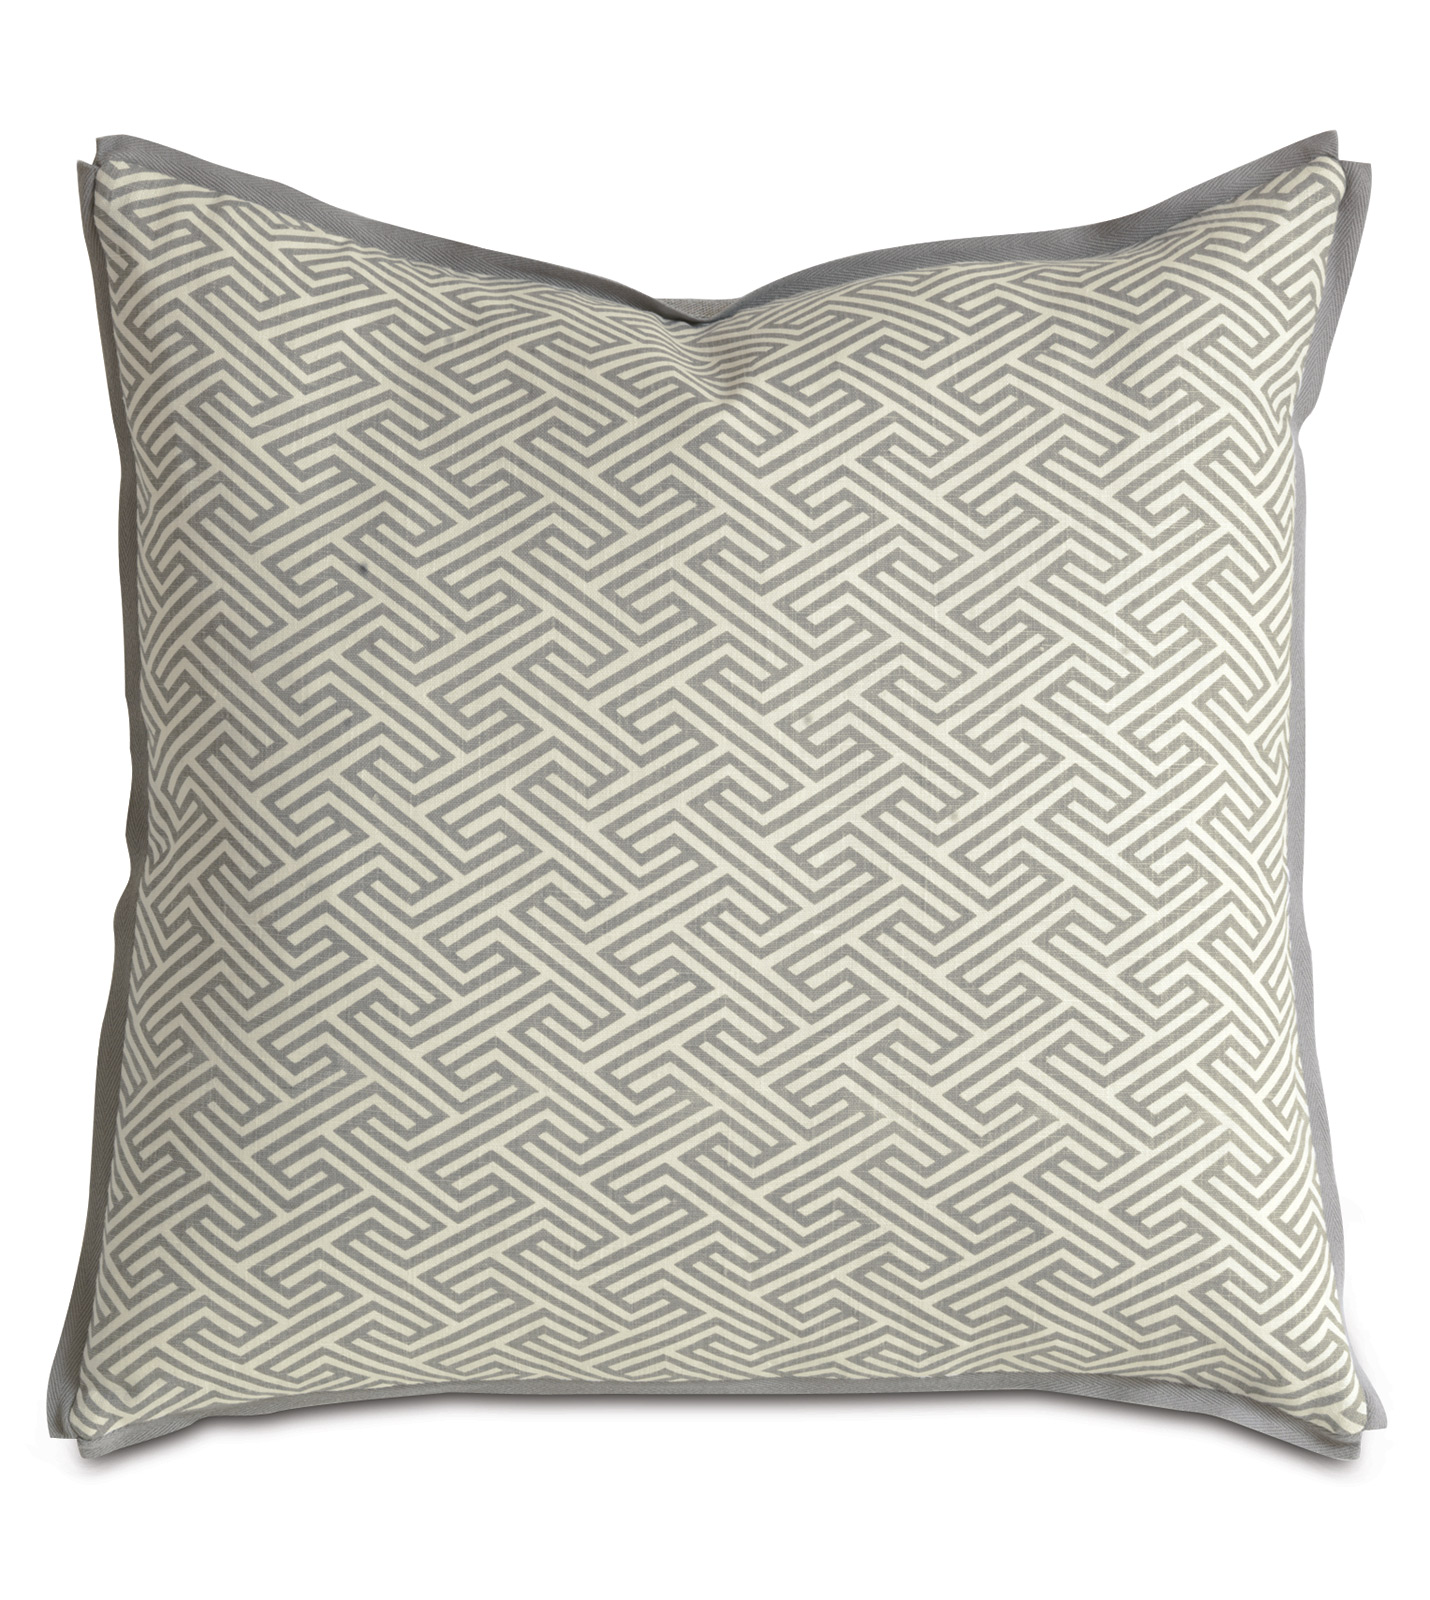 Barclay Butera Luxury Bedding by Eastern Accents - NAPLES ACCENT PILLOW